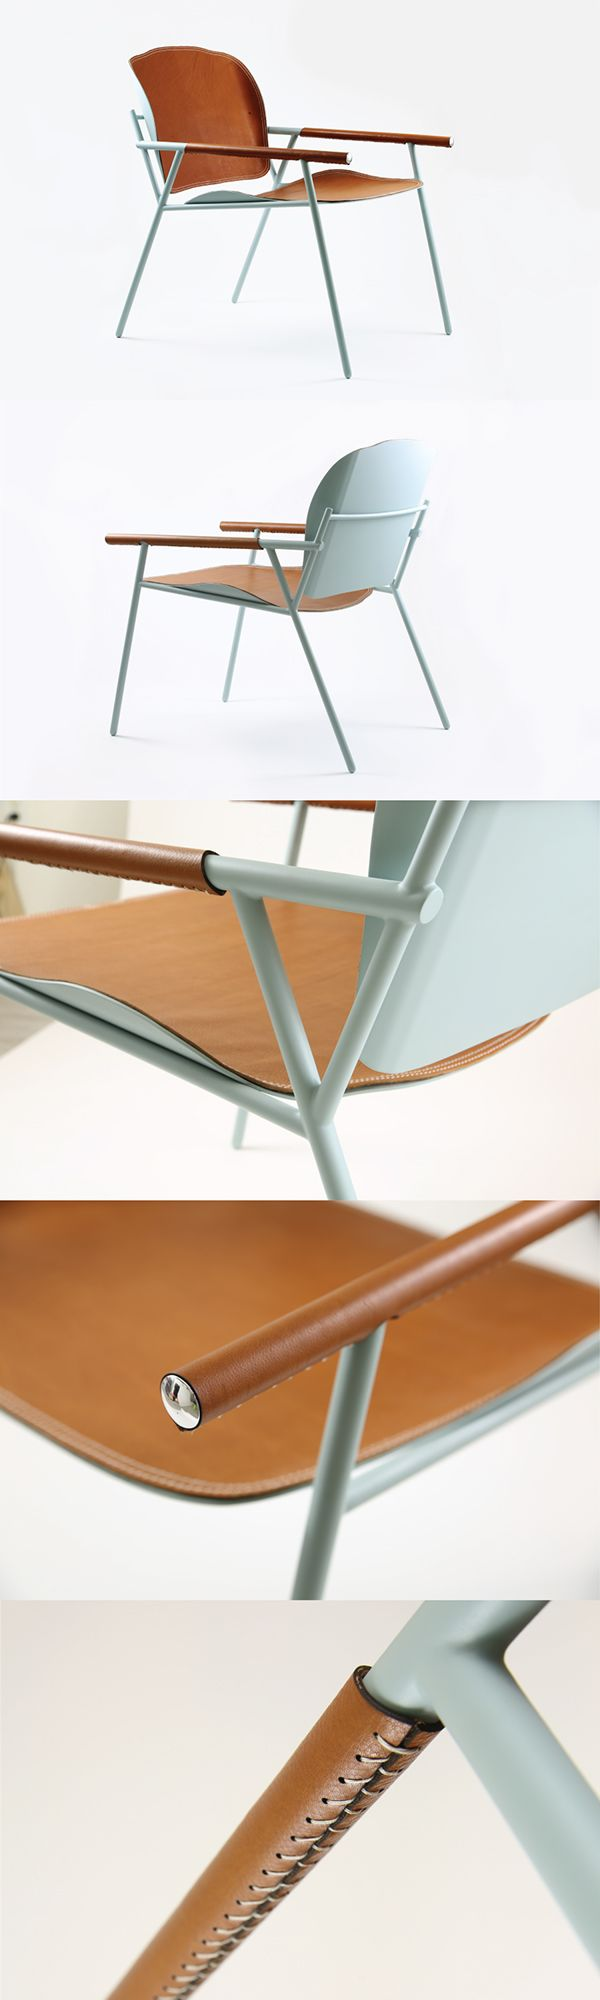 Ariel Chair   A Lounge Chair Inspired By The Classic Fixed Bicycle.